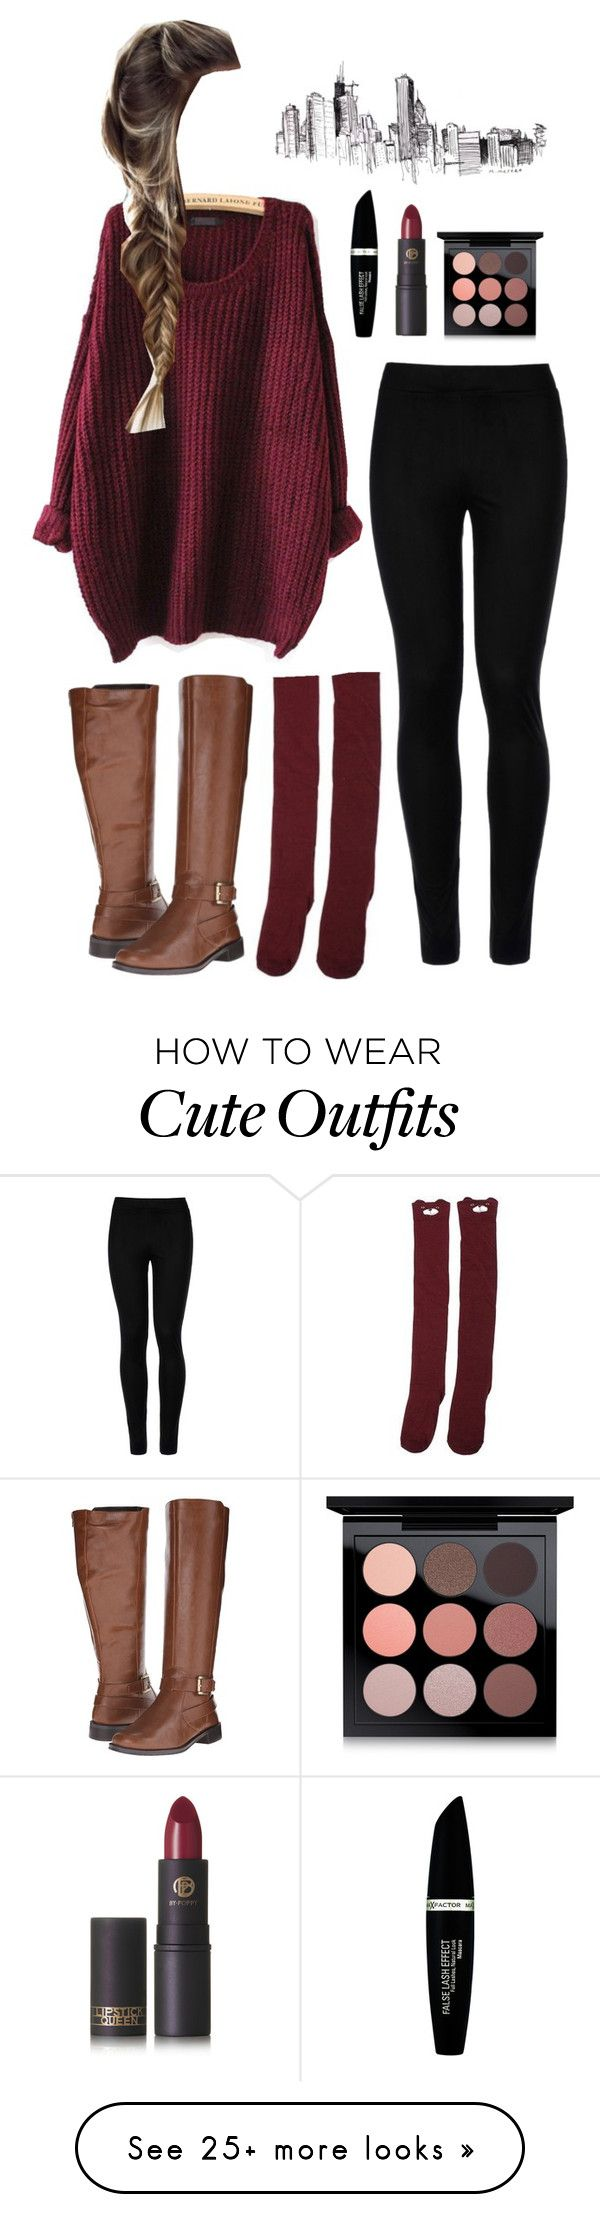 """school outfit 8"" by g-wear on Polyvore featuring Wolford, Aerosoles, Max Factor, Lipstick Queen and MAC Cosmetics"